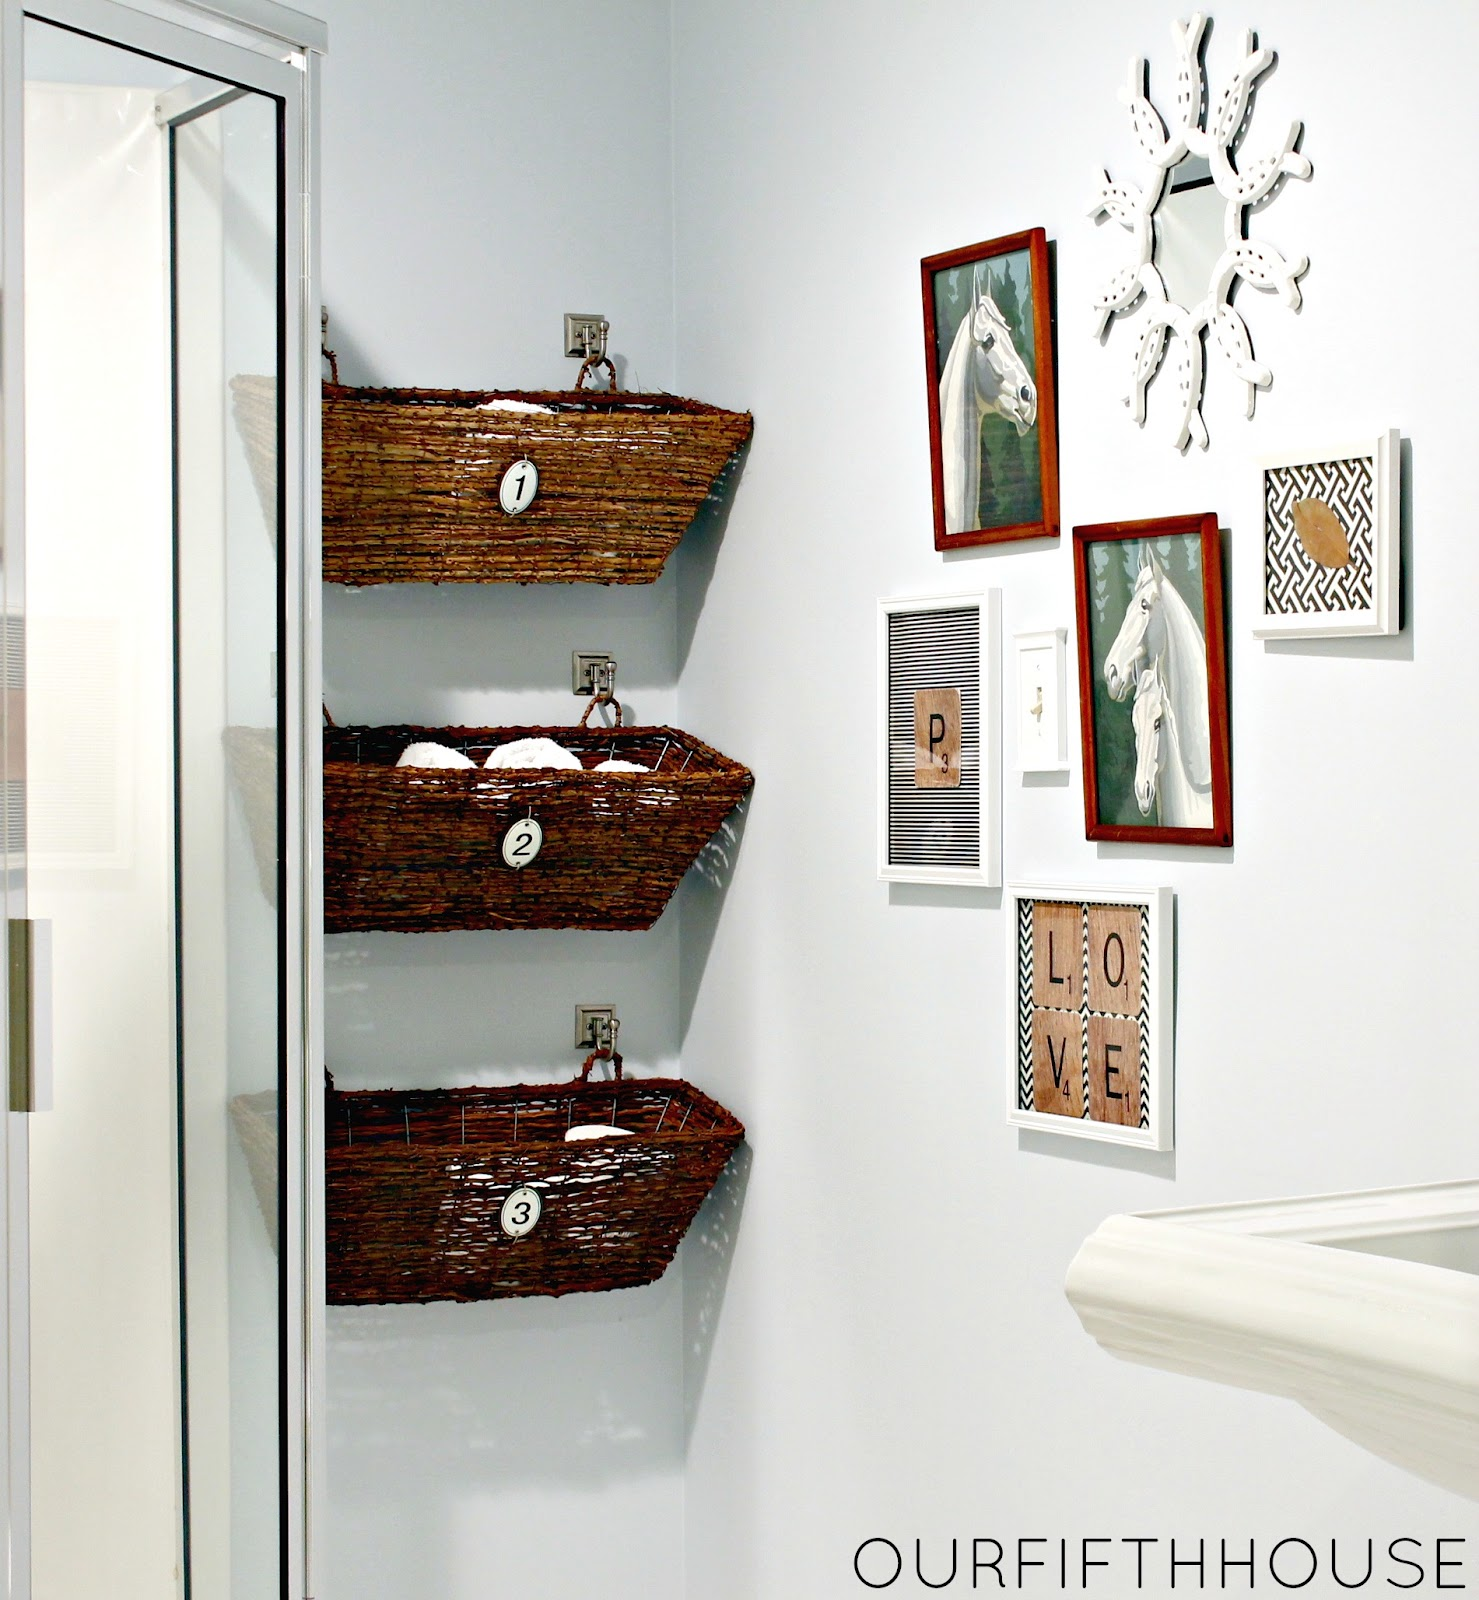 Images of bathroom wall storage ideas 12 small bathroom storage ideas - wall storage solutons and shelves for ojlatke